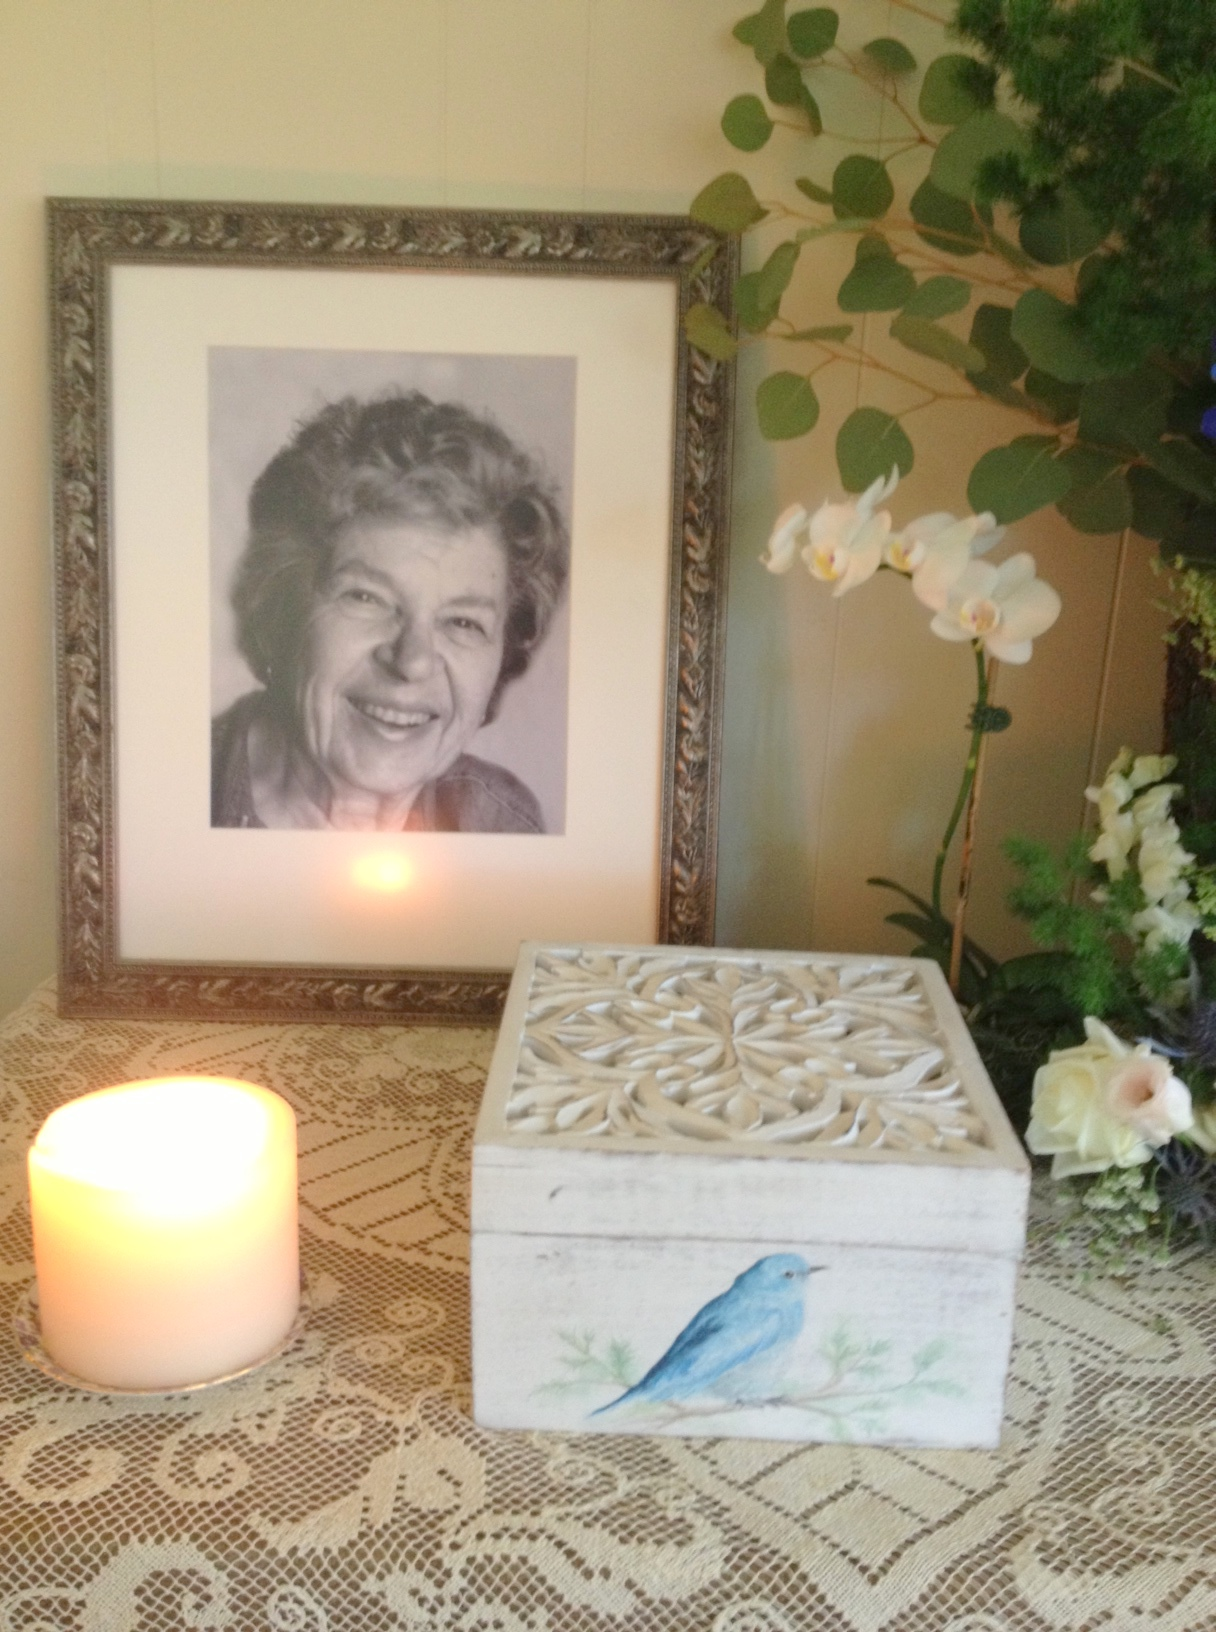 I painted a bluebird on the box that houses her remains, for it reminds me of my mom's beautiful blue eyes, and the little bluebird family that lived on the porch of their Montana home.